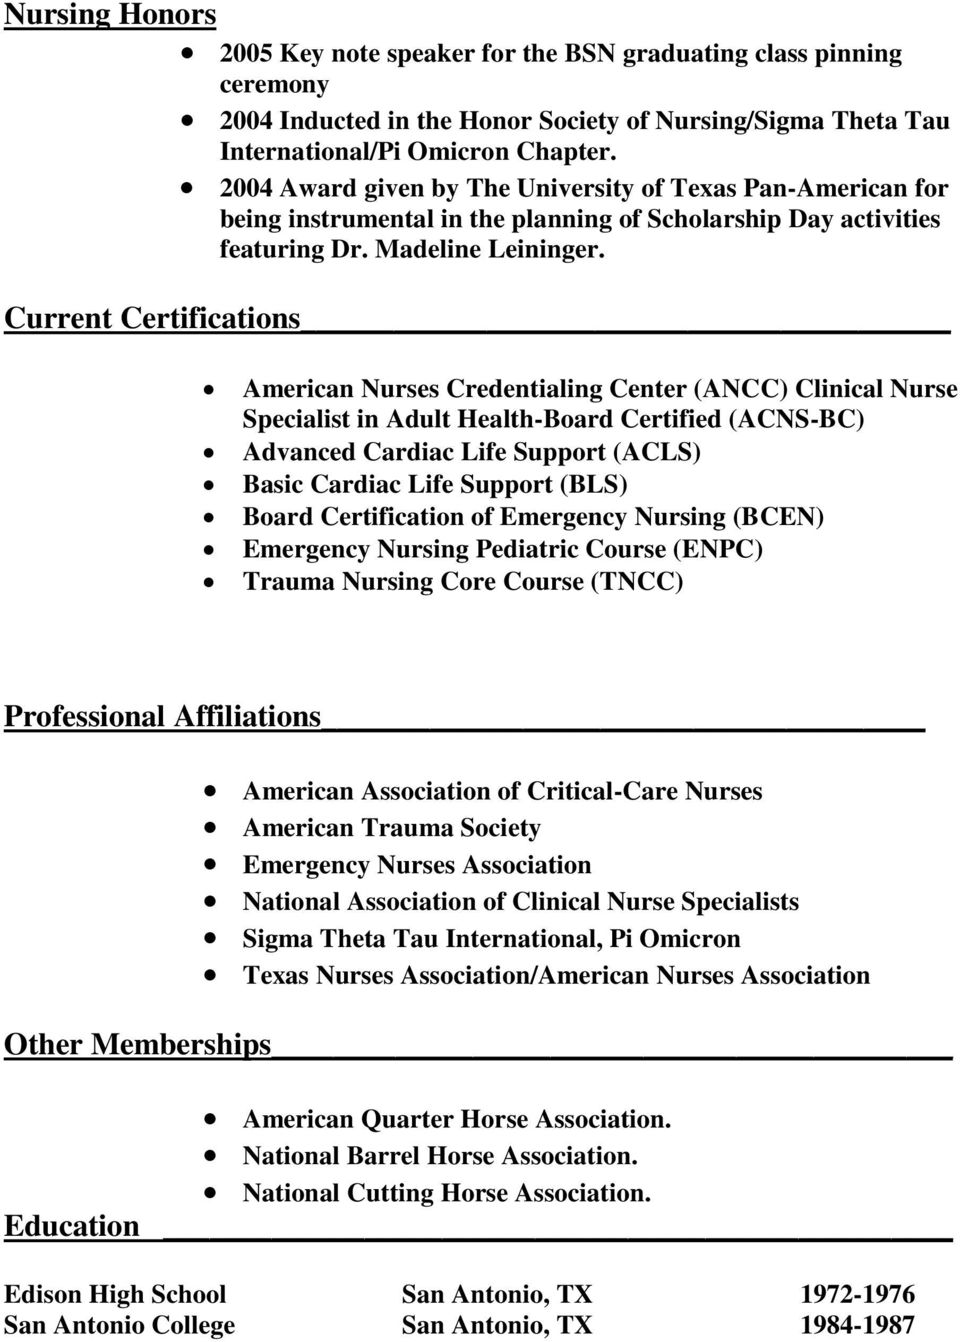 Current Certifications American Nurses Credentialing Center (ANCC) Clinical Nurse Specialist in Adult Health-Board Certified (ACNS-BC) Advanced Cardiac Life Support (ACLS) Basic Cardiac Life Support